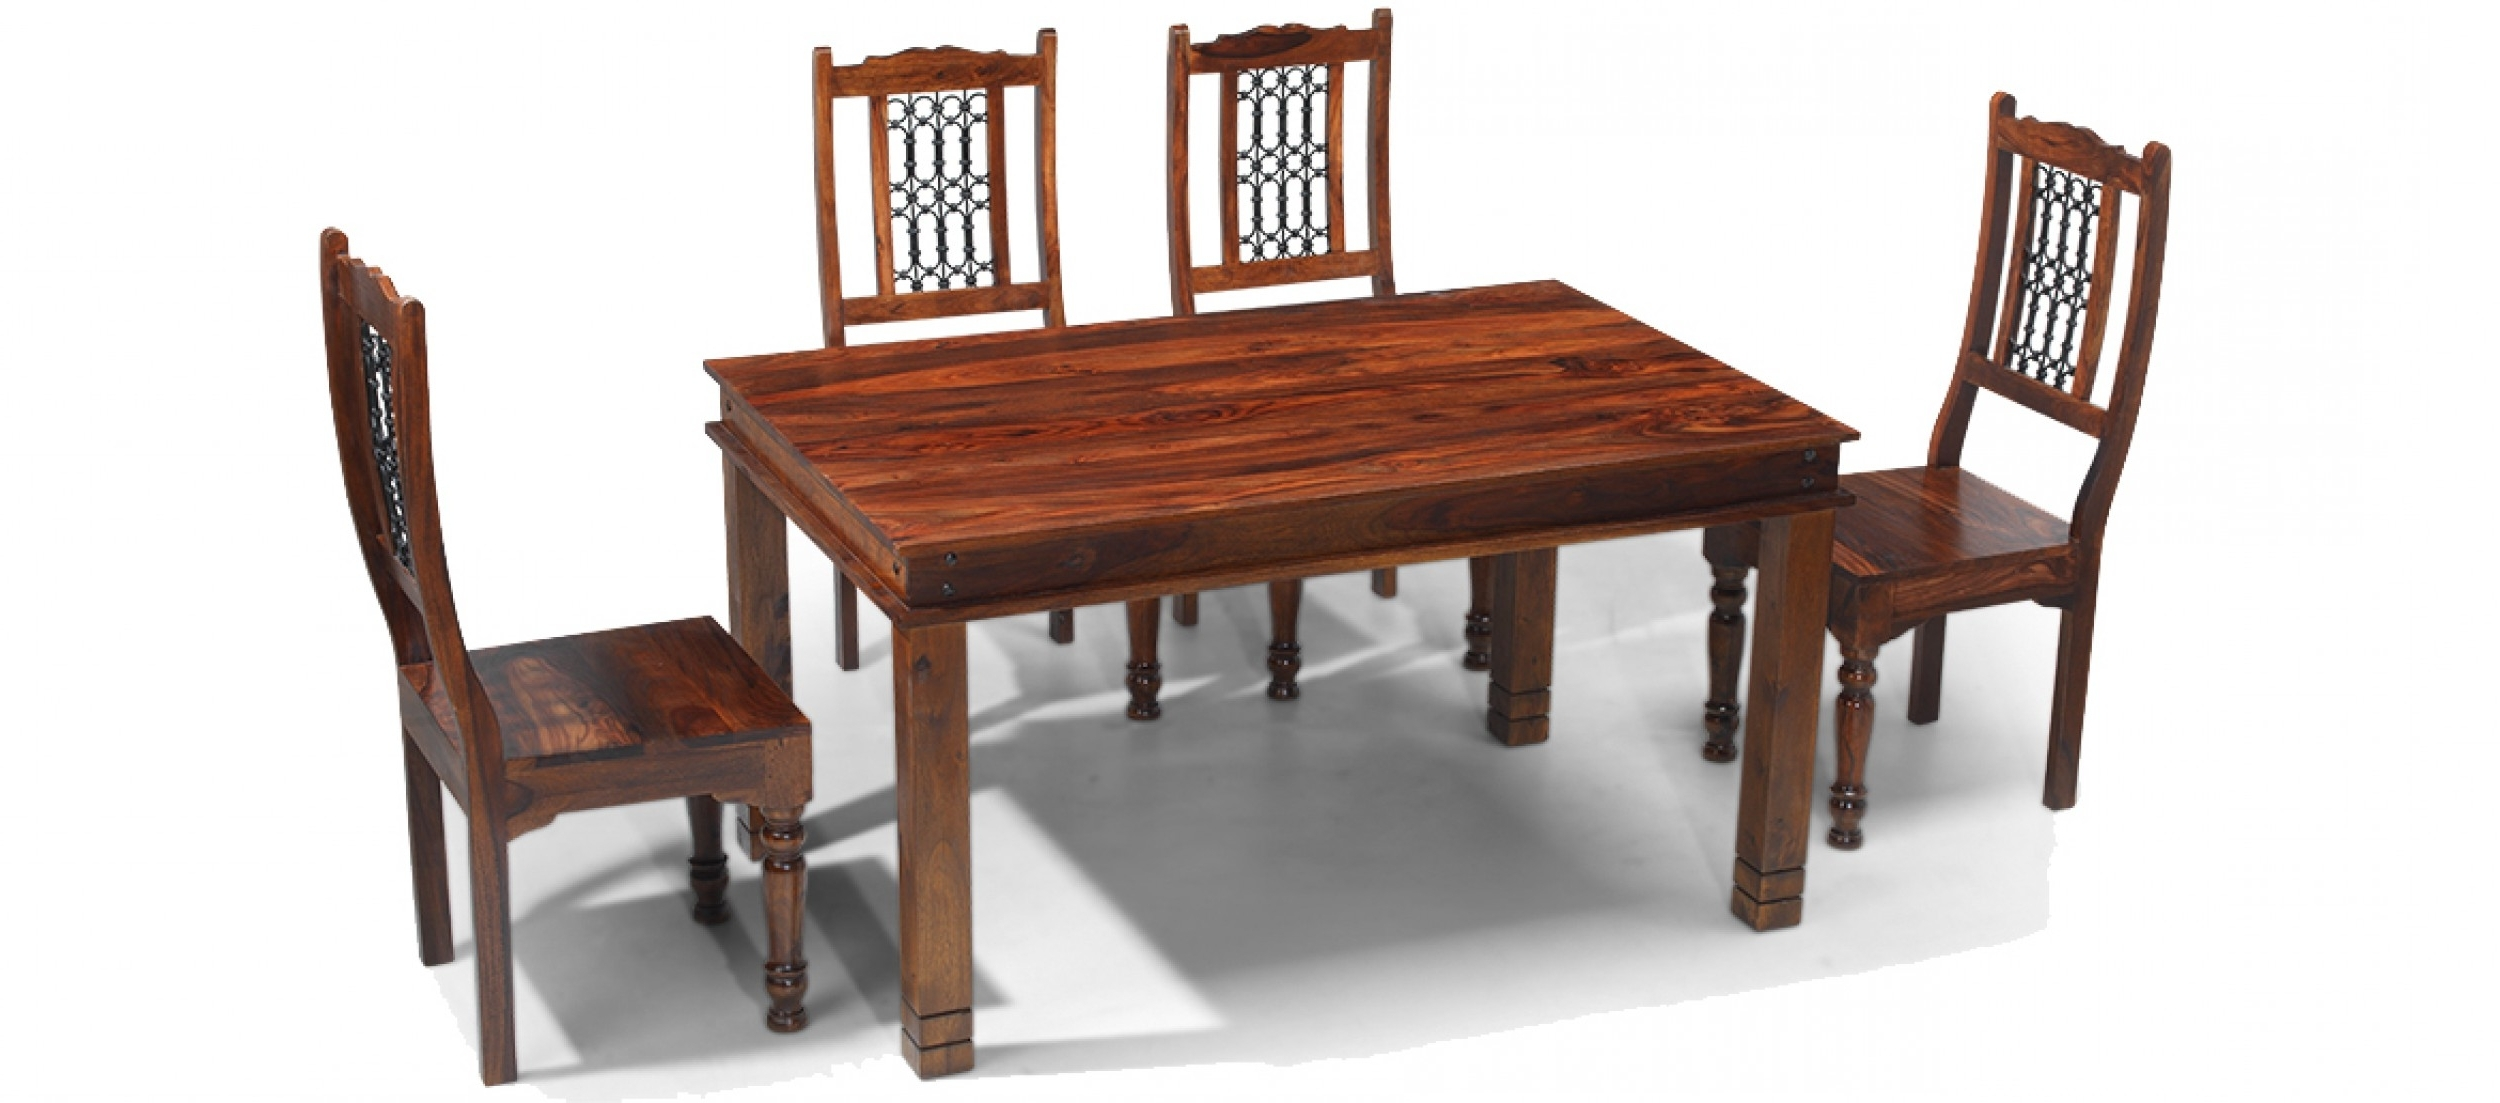 Sheesham Dining Tables Pertaining To Most Current Jali Sheesham 120 Cm Chunky Dining Table And 4 Chairs (View 17 of 25)